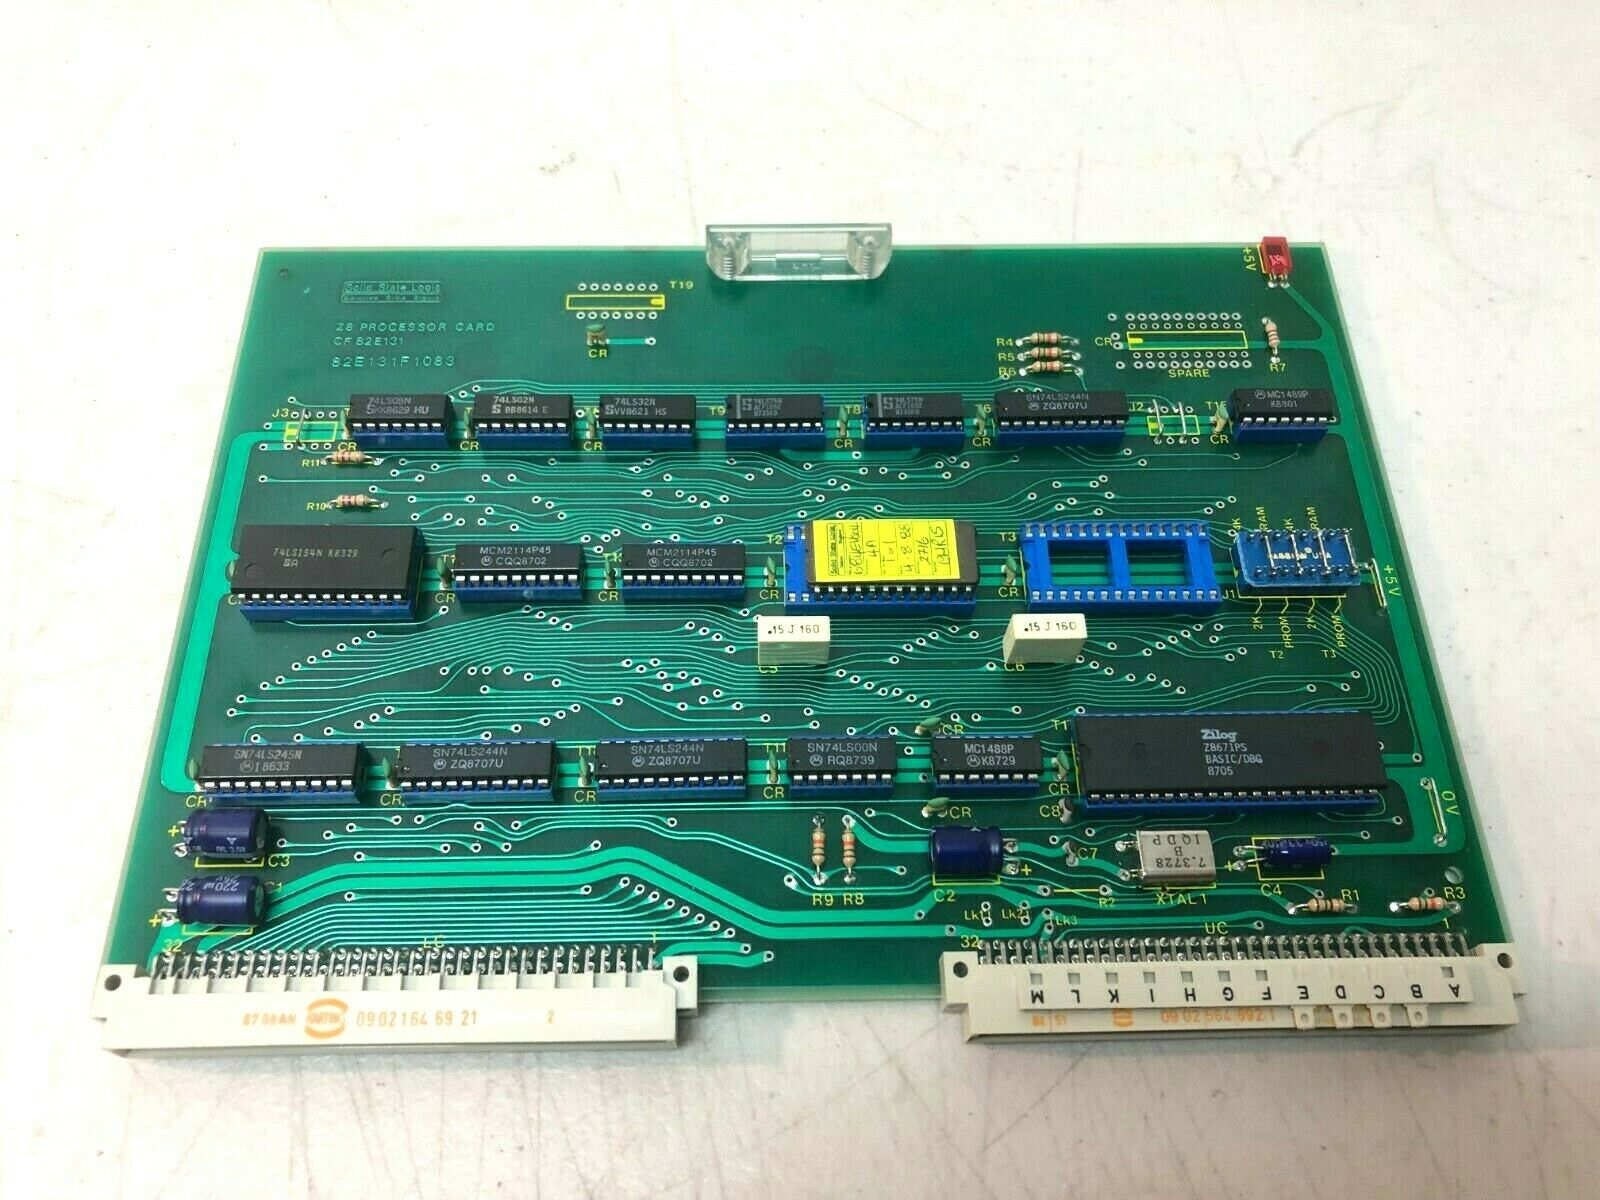 Solid state logic processor card Z8 processor CF 82E131 - 82E131F1083